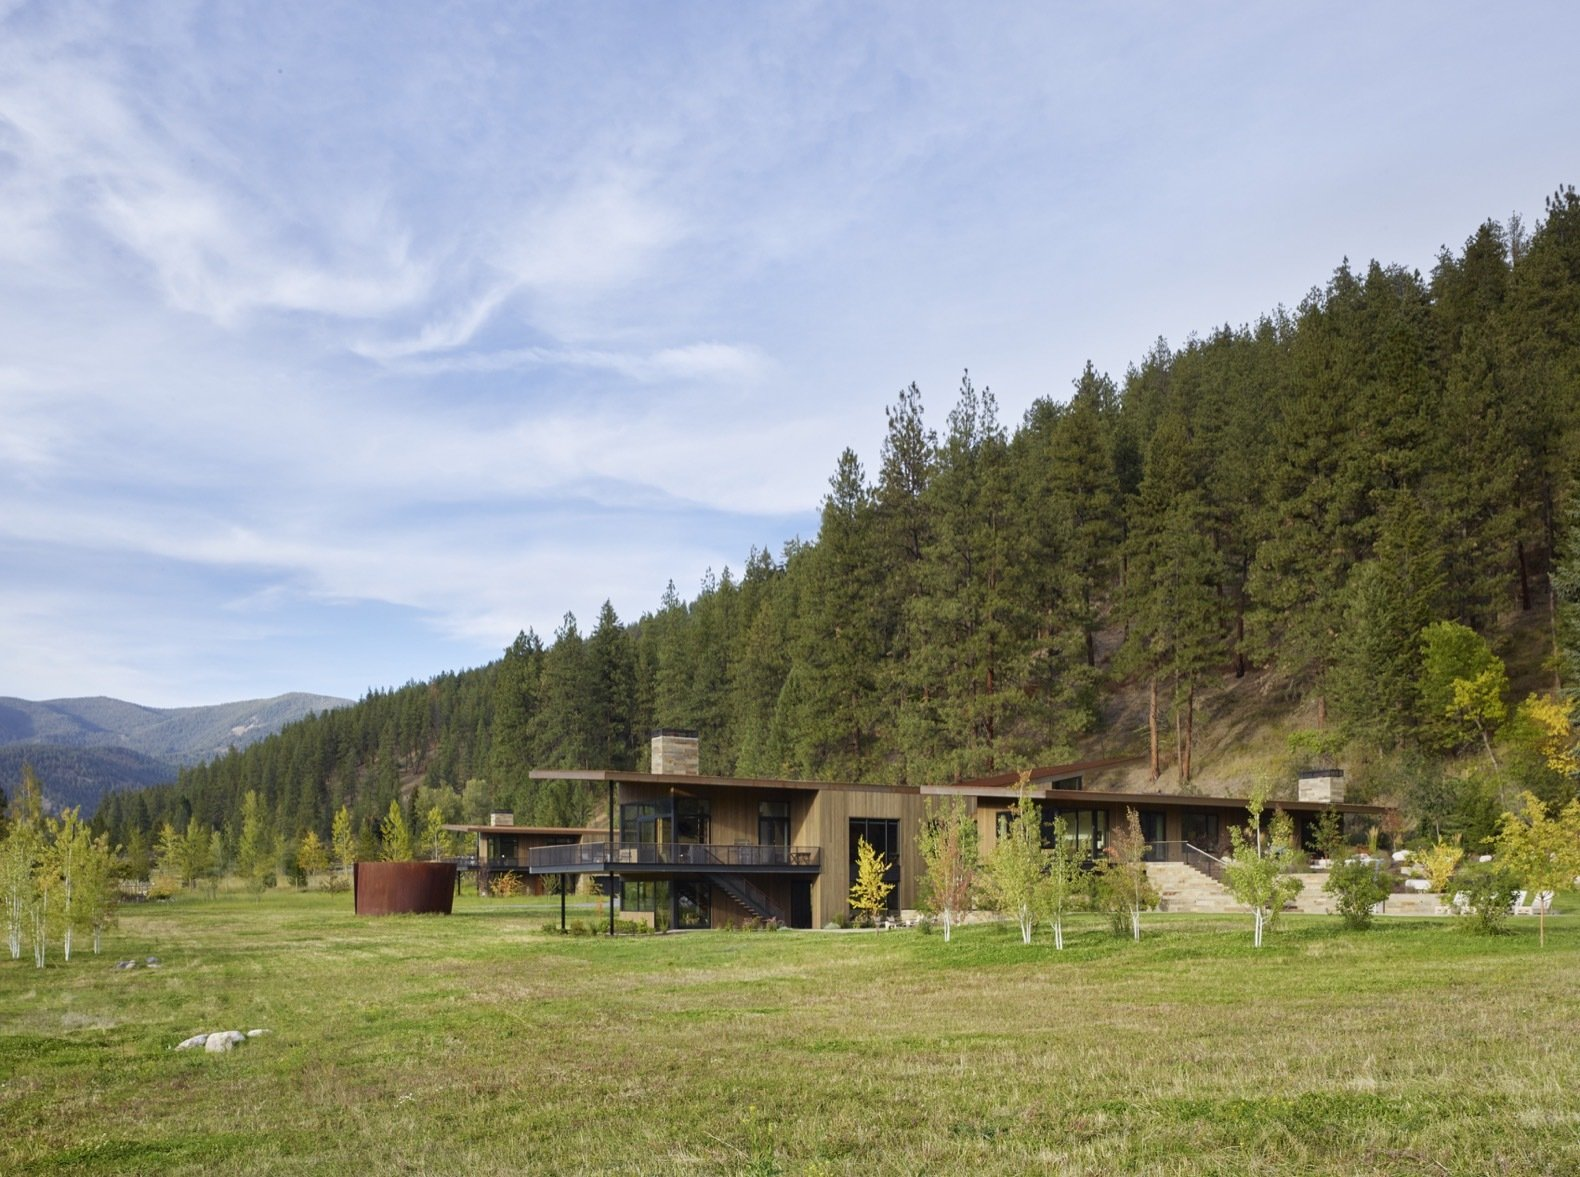 Exterior, Metal Roof Material, Wood Siding Material, House Building Type, Stone Siding Material, Glass Siding Material, and Metal Siding Material The modern Montana home is nestled into a transitional zone between a forested butte and a grassy meadow in the western part of the state.    Photo 1 of 12 in A Modern Montana House Mixes a Love of Art With the Outdoors